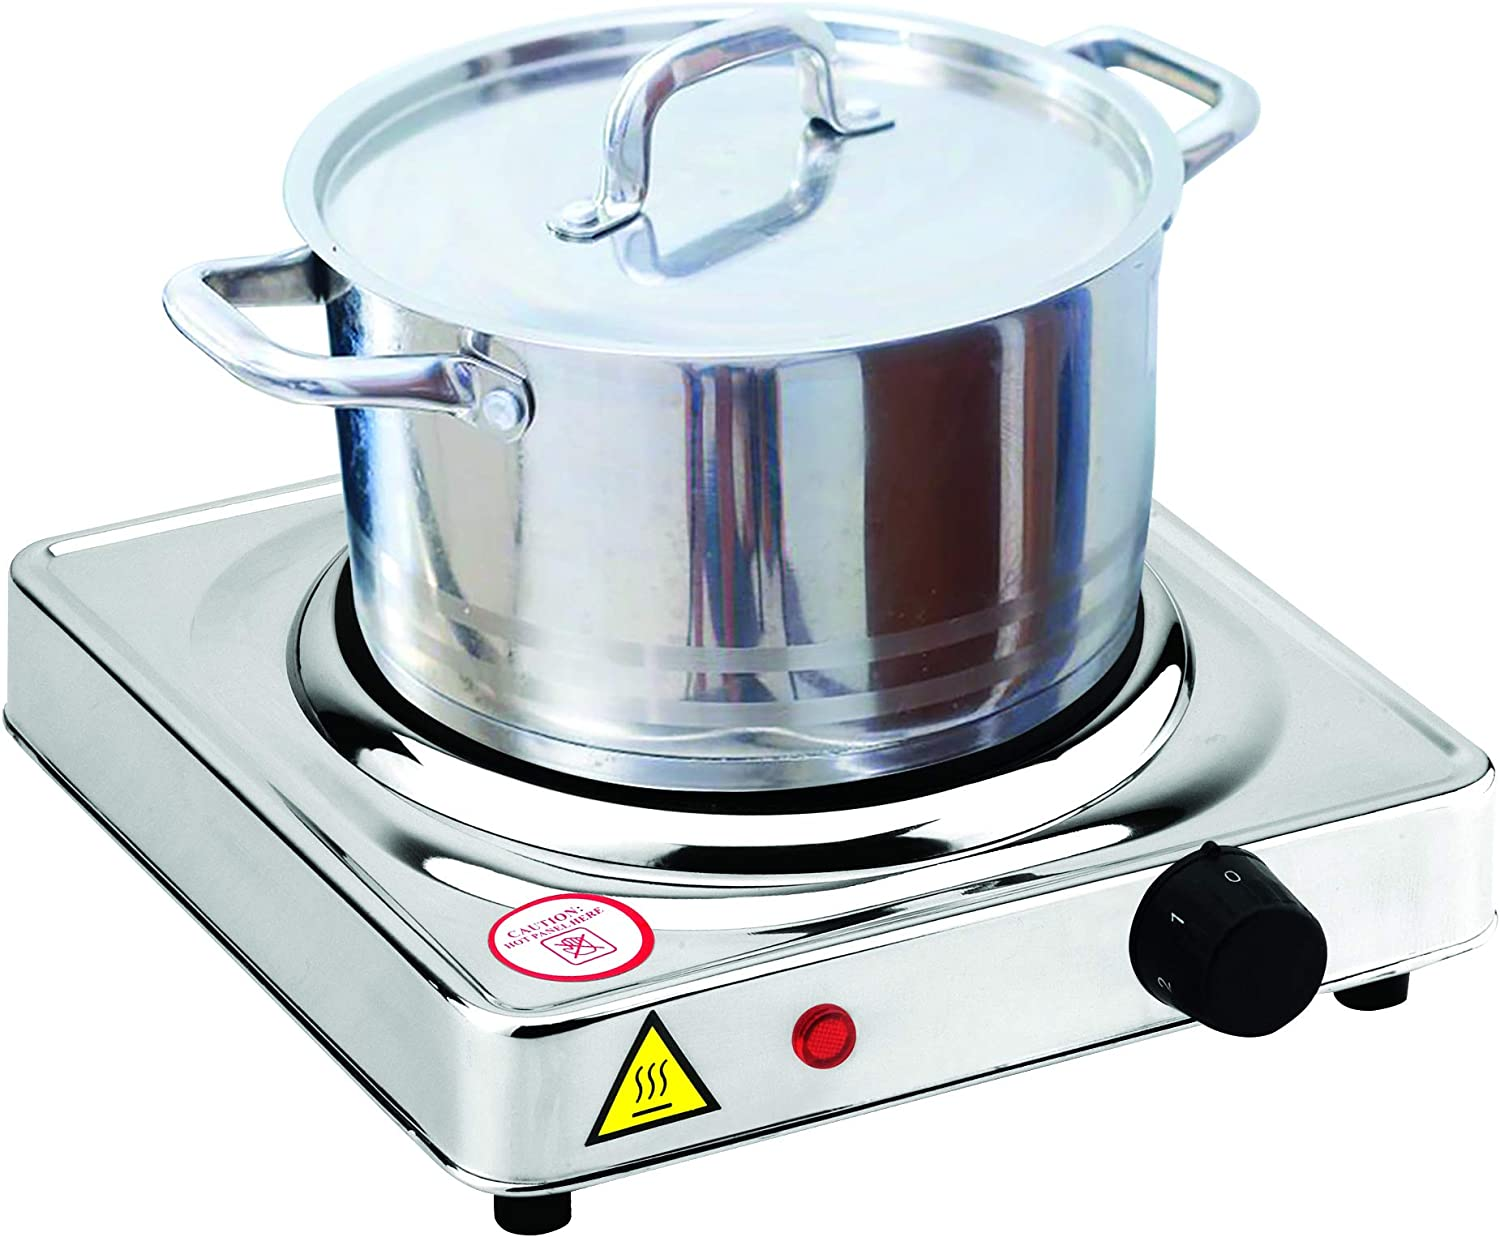 Dominion Hot Plate Electric Burner Single Burner, Stainless Steel, Heating Plate Portable Burner with Adjustable Temperature Control, 1000 Watts, Stainless Steel, Non-Slip Rubber Feet Easy To Clean